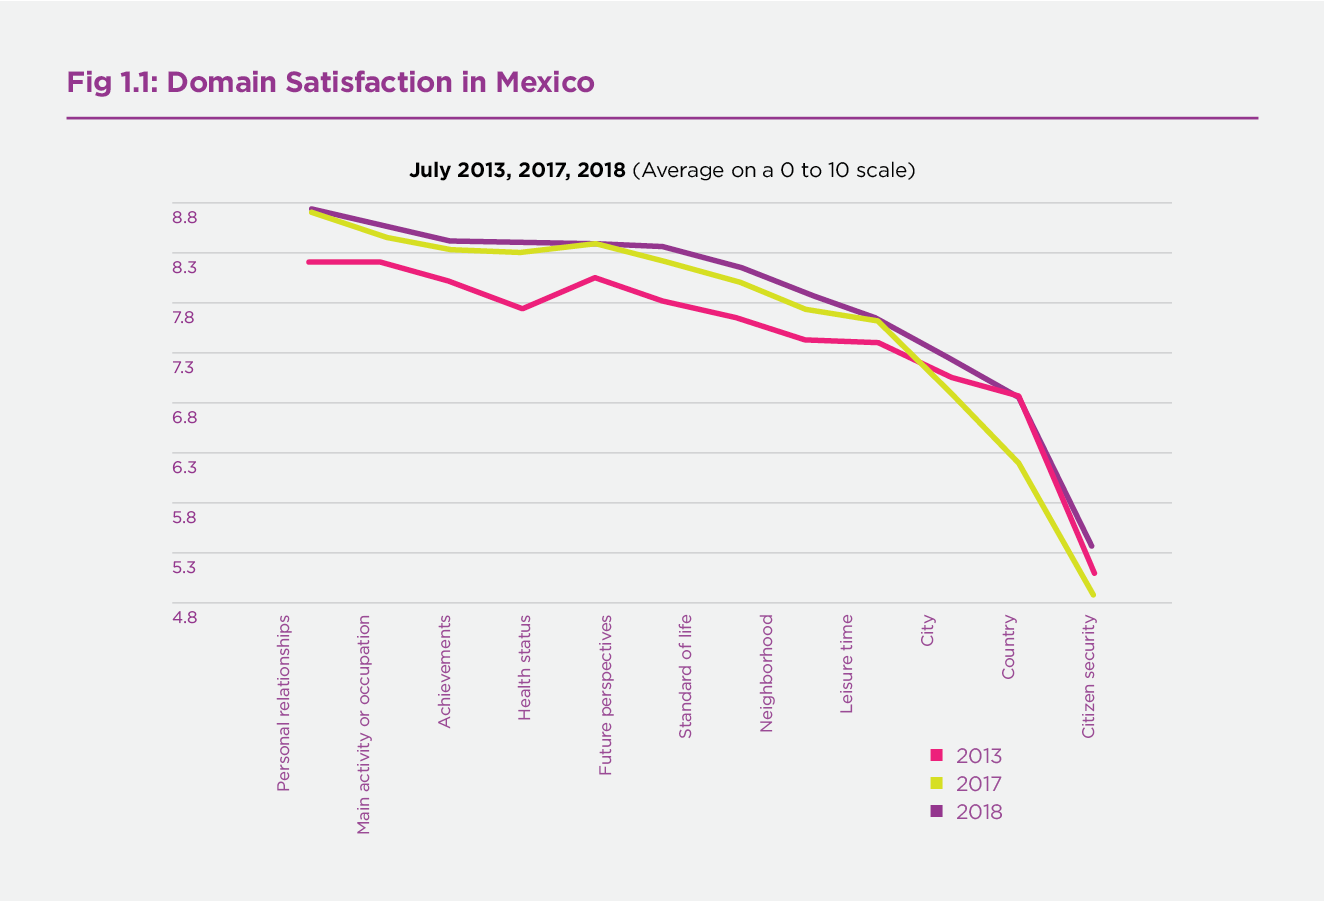 Figure 1.1 Domain Satisfaction in Mexico